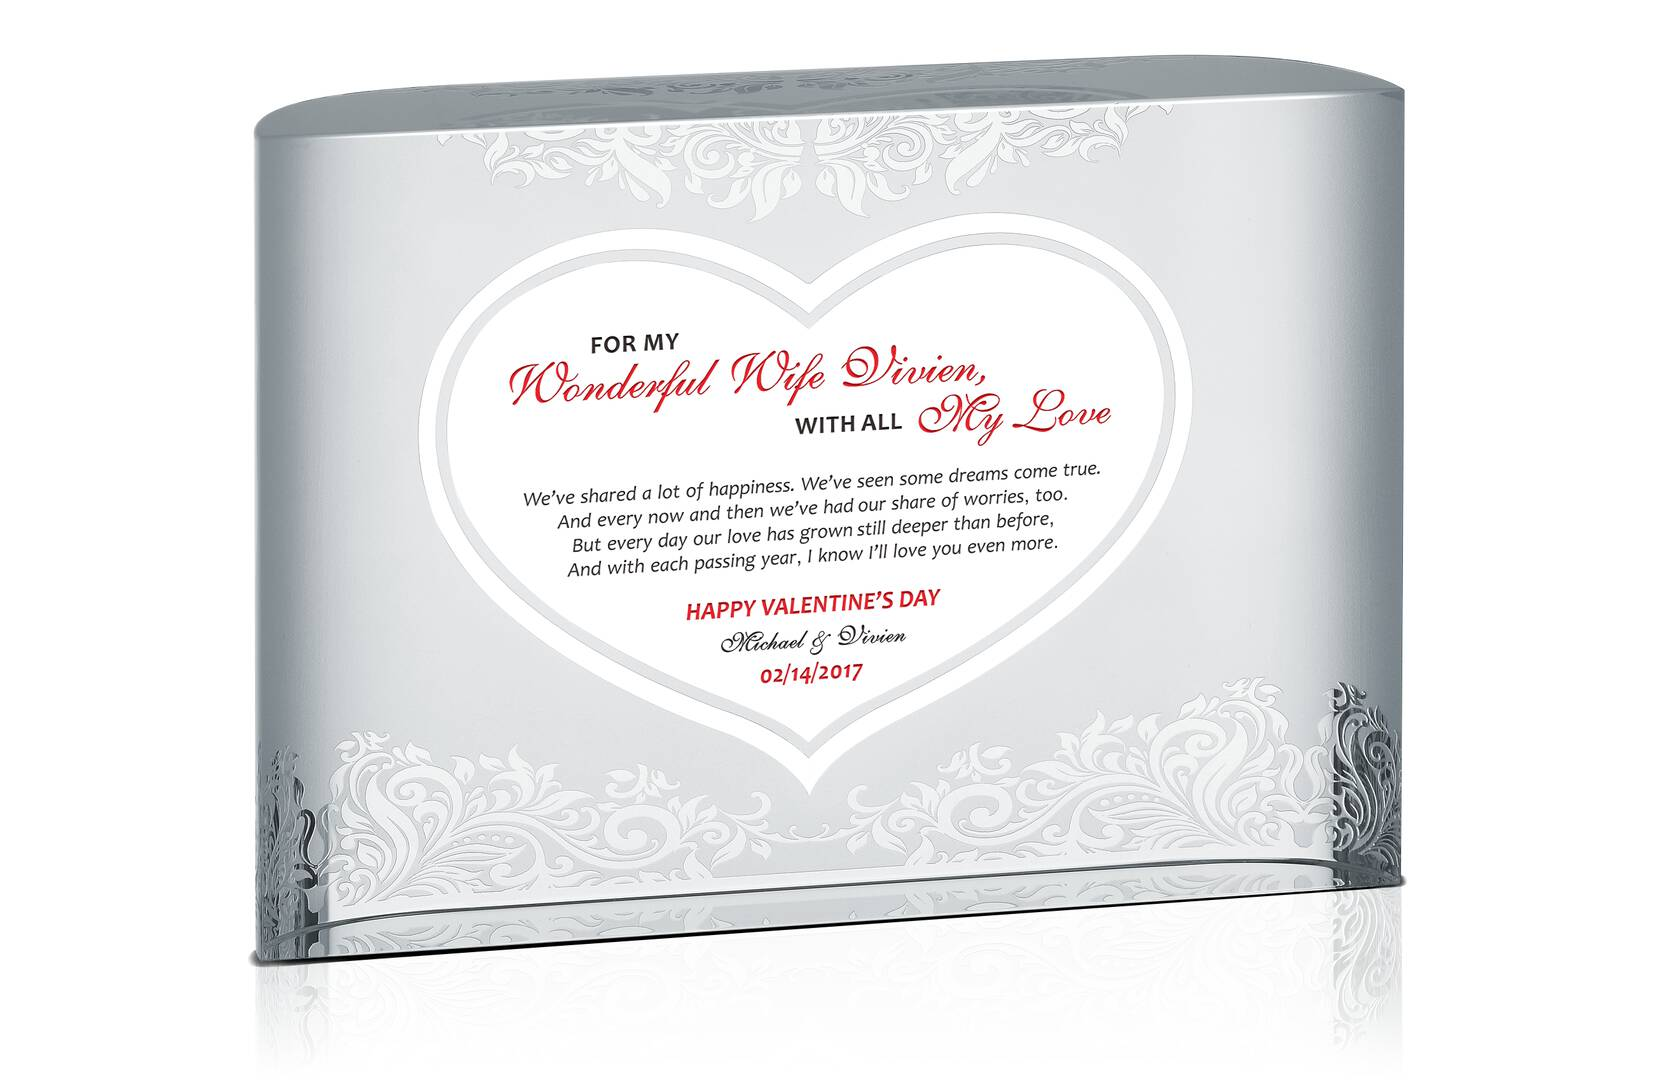 All My Love Valentine Gift - Crystal Central